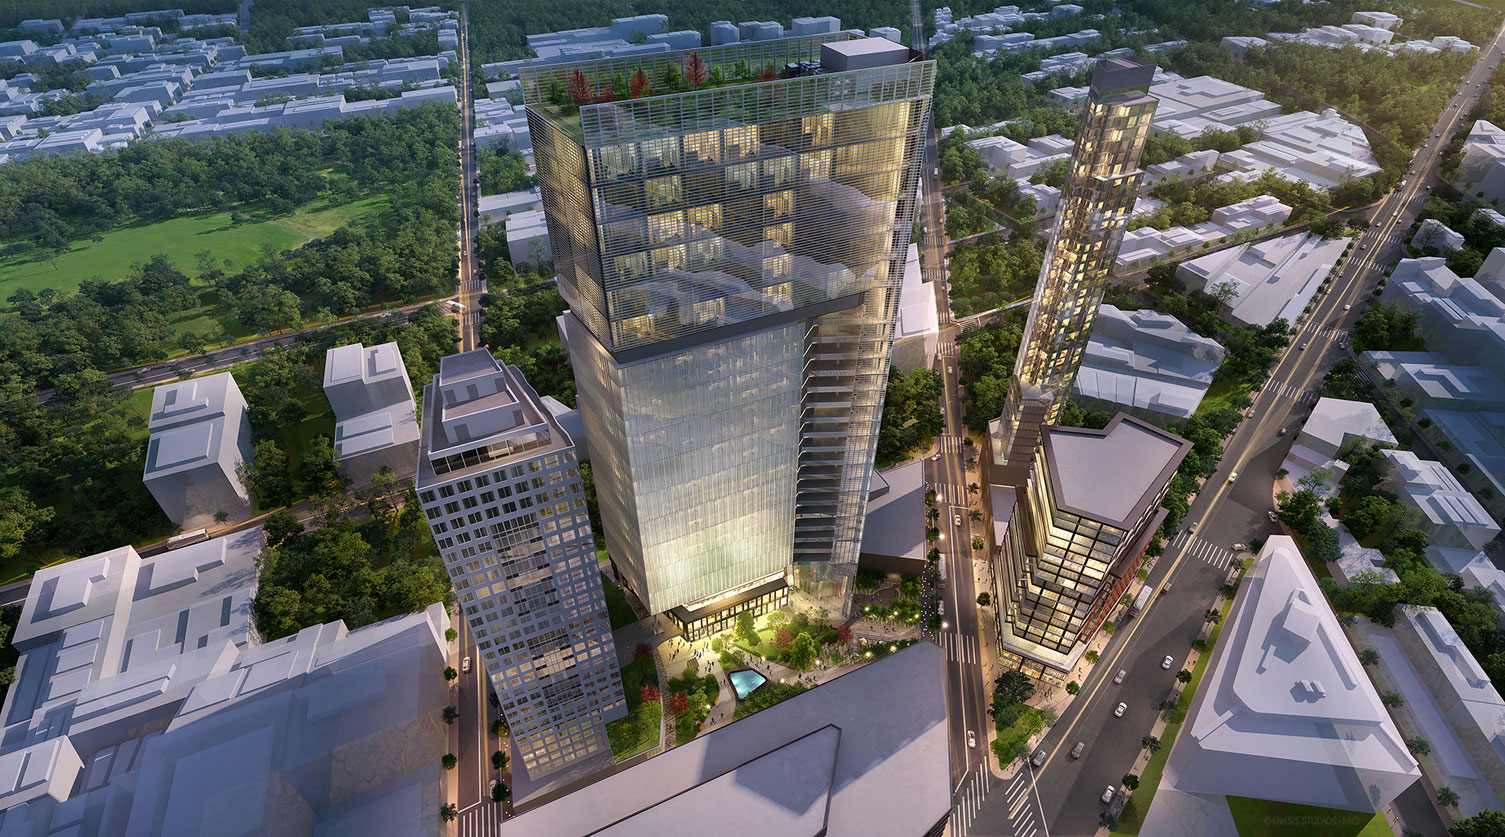 616023 Digital Photorealistic Architectural Renderings of Fulton Tower Aerial at Dusk for Zoning & Code Consulting Group